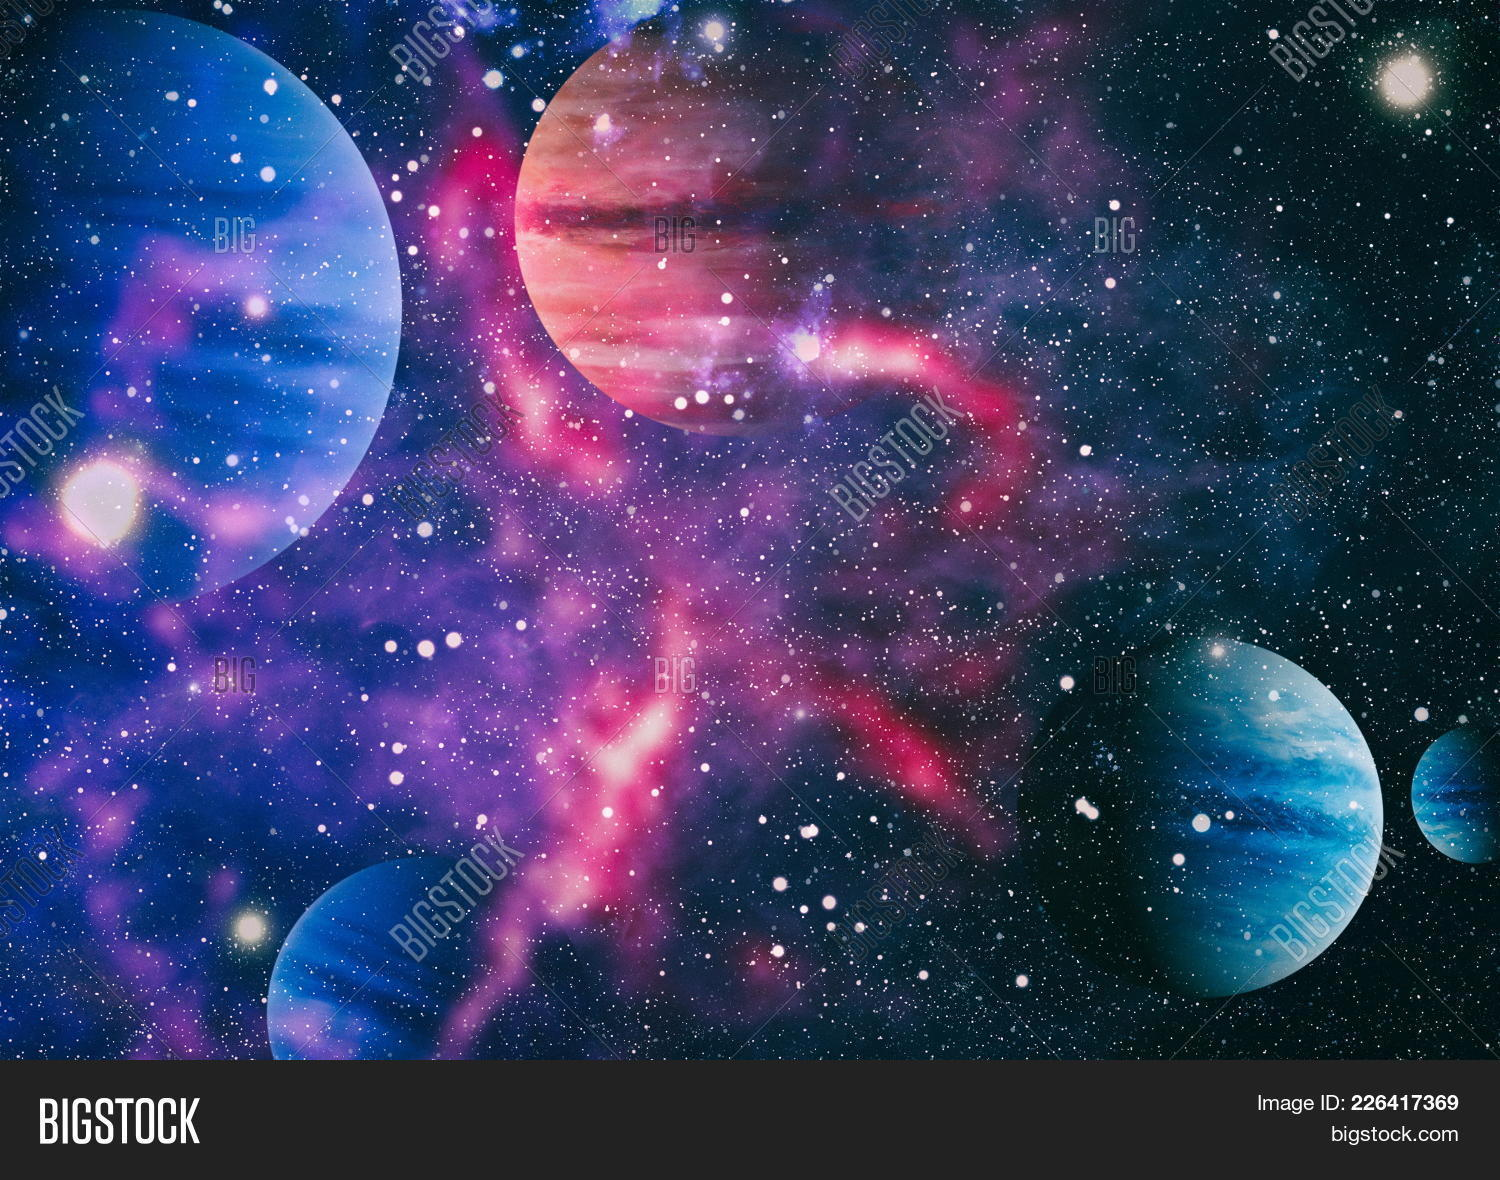 cosmos space nebula galaxies powerpoint template cosmos space